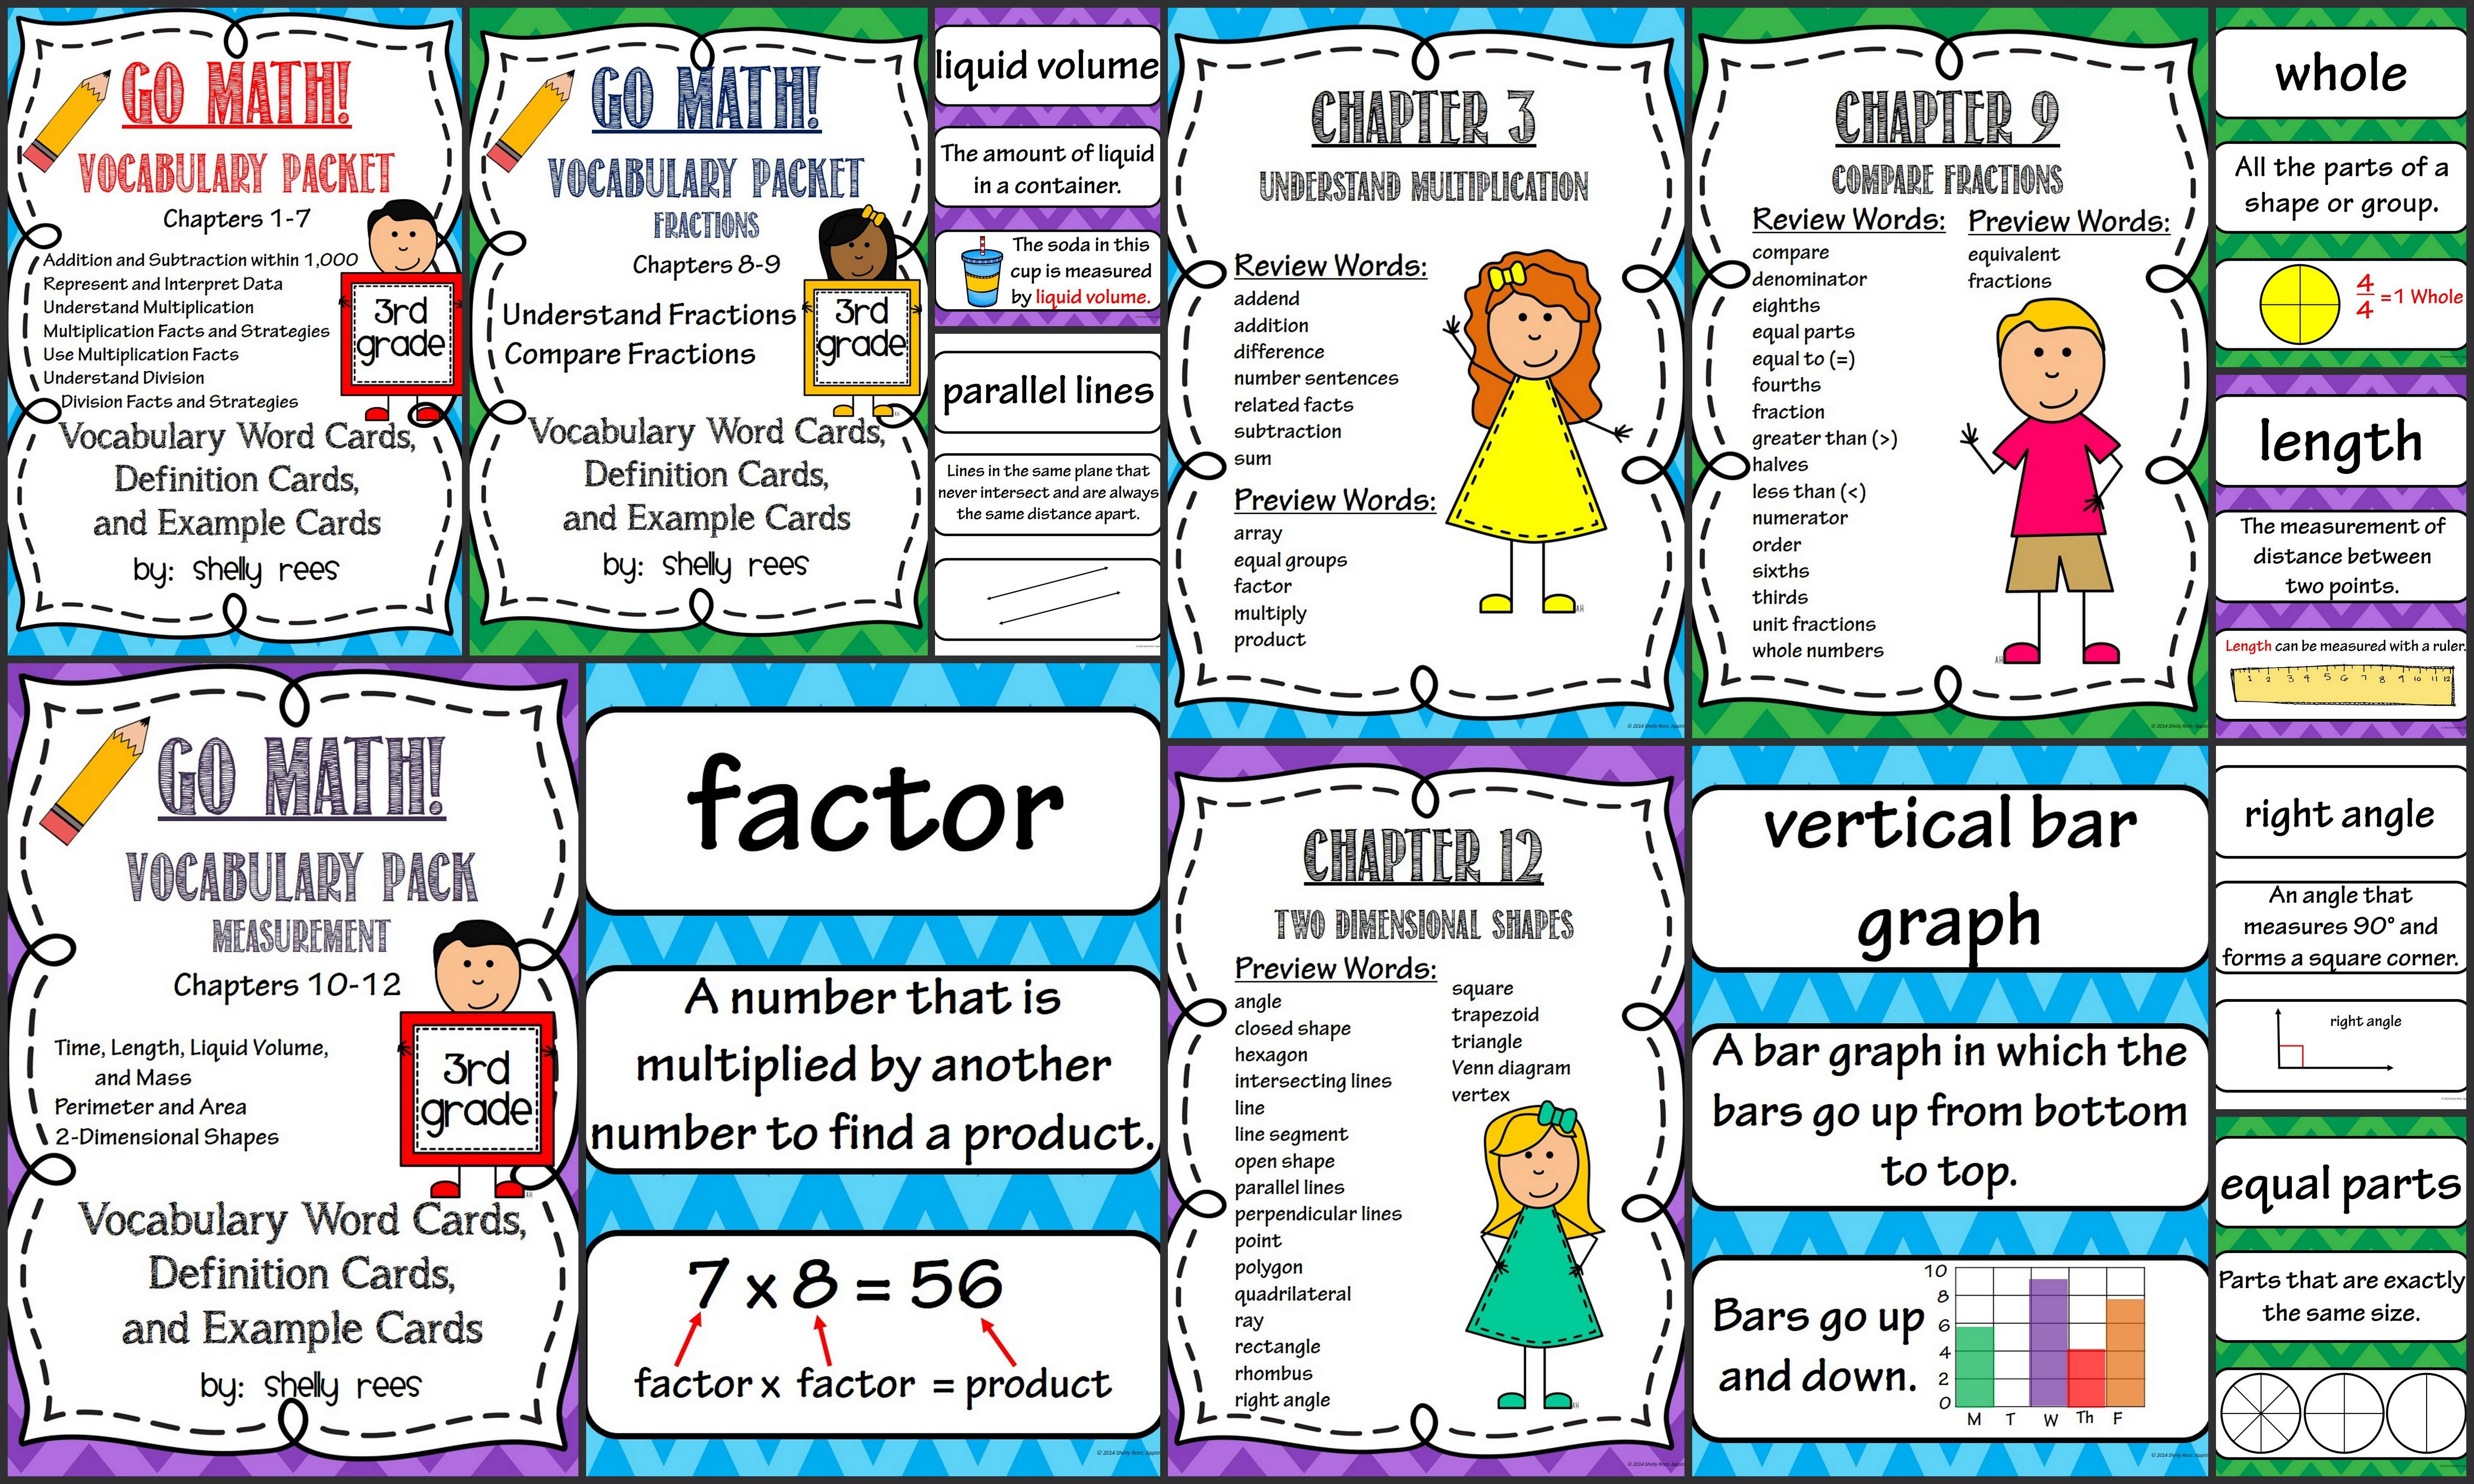 Go Math Grade 3 Vocabulary for the Year | Go math ...